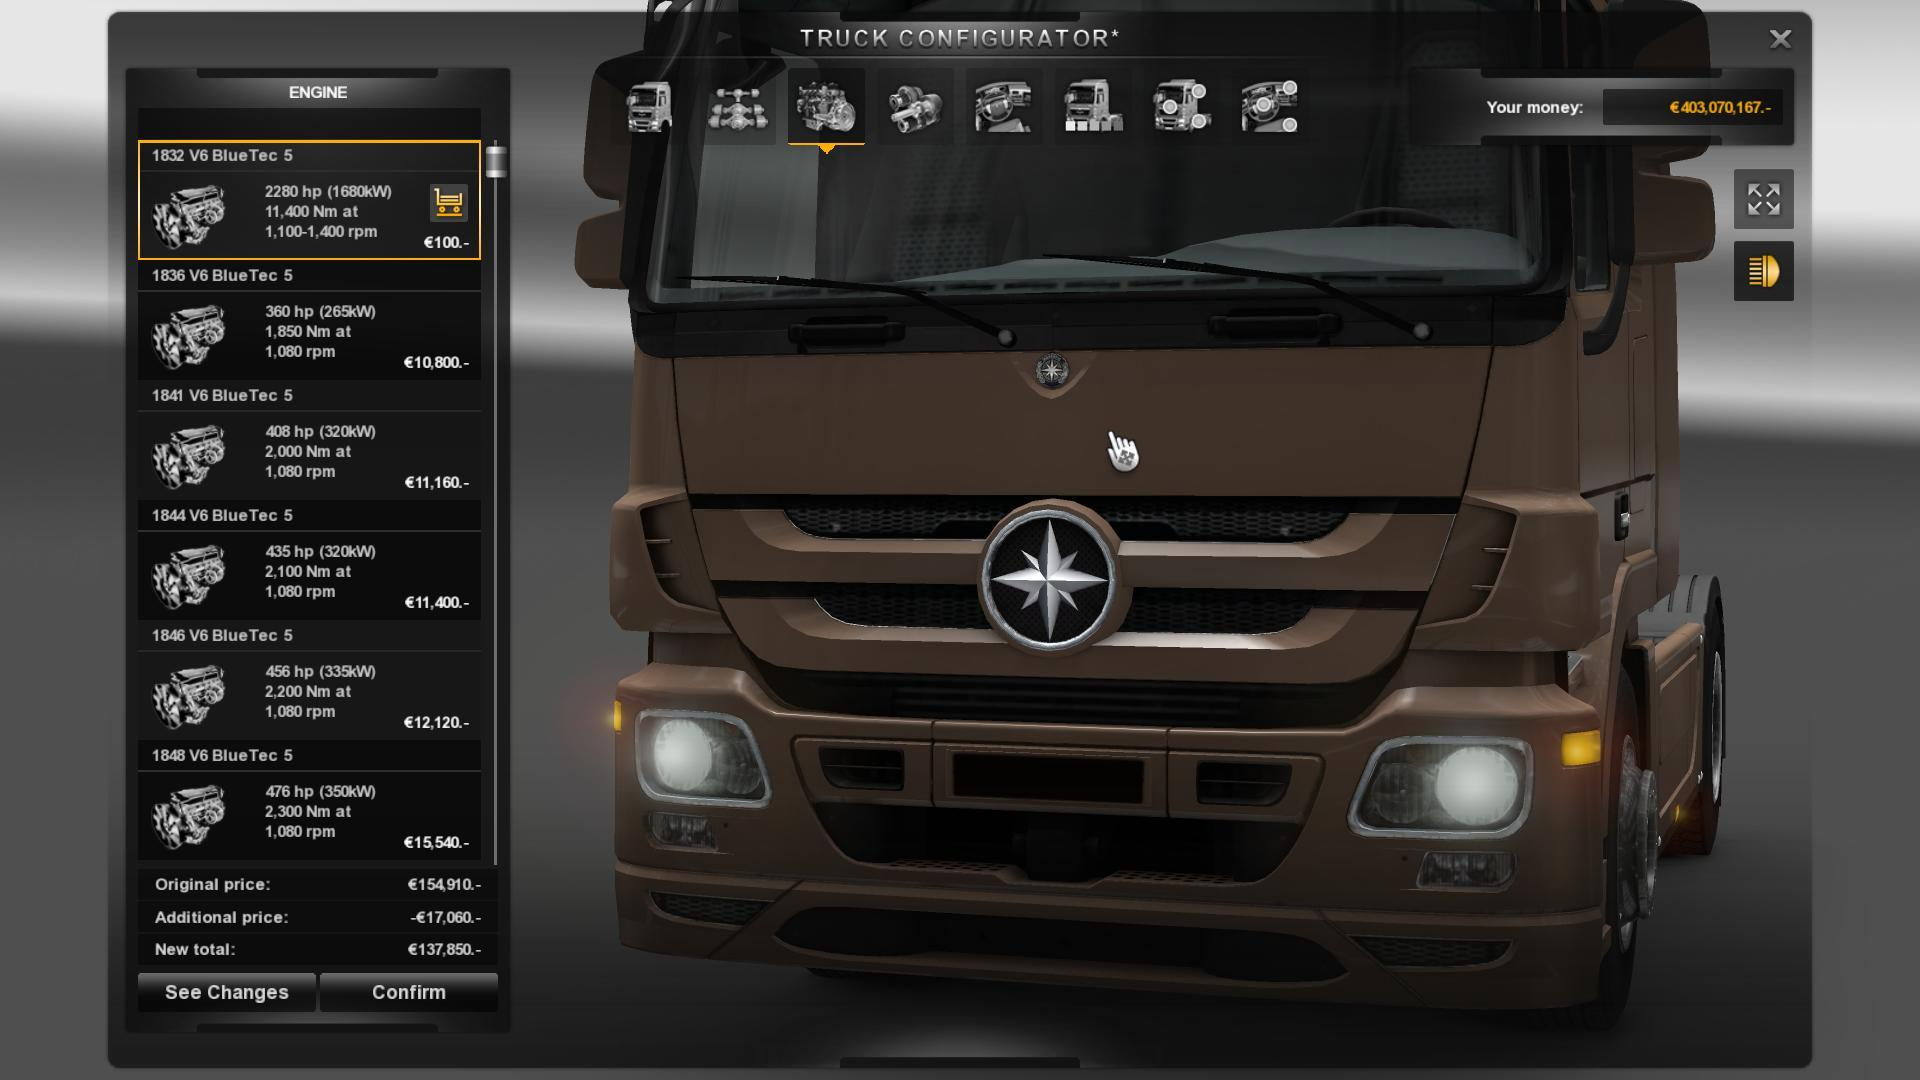 MERCEDES 2280 HP ENGINE ETS 2 -Euro Truck Simulator 2 Mods